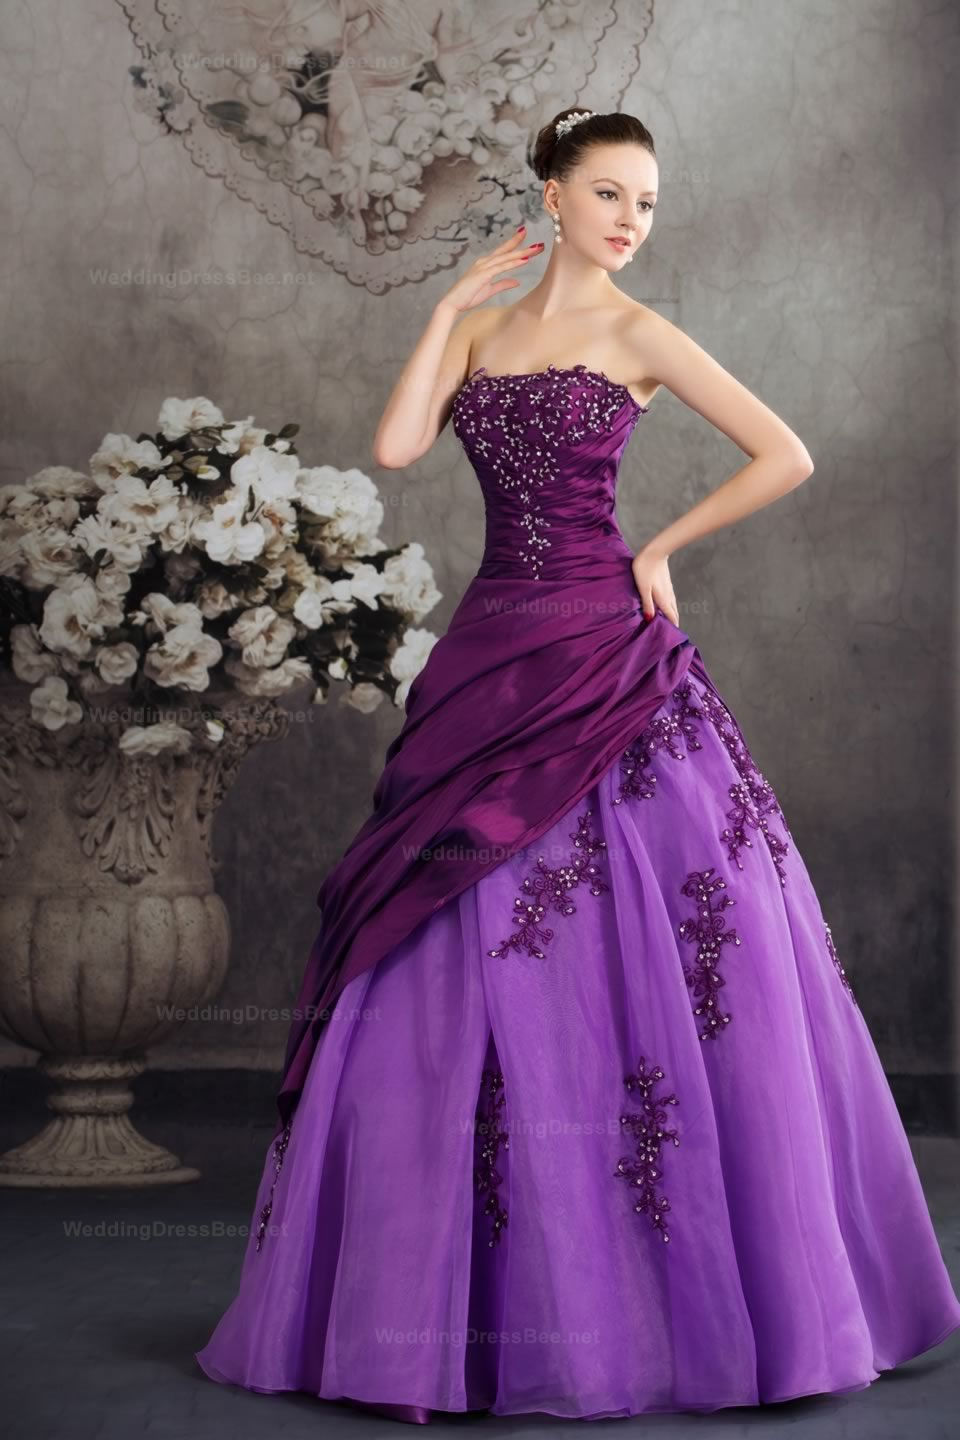 Ifi wanted a purple wedding, this would be my dress! | Wedding ...